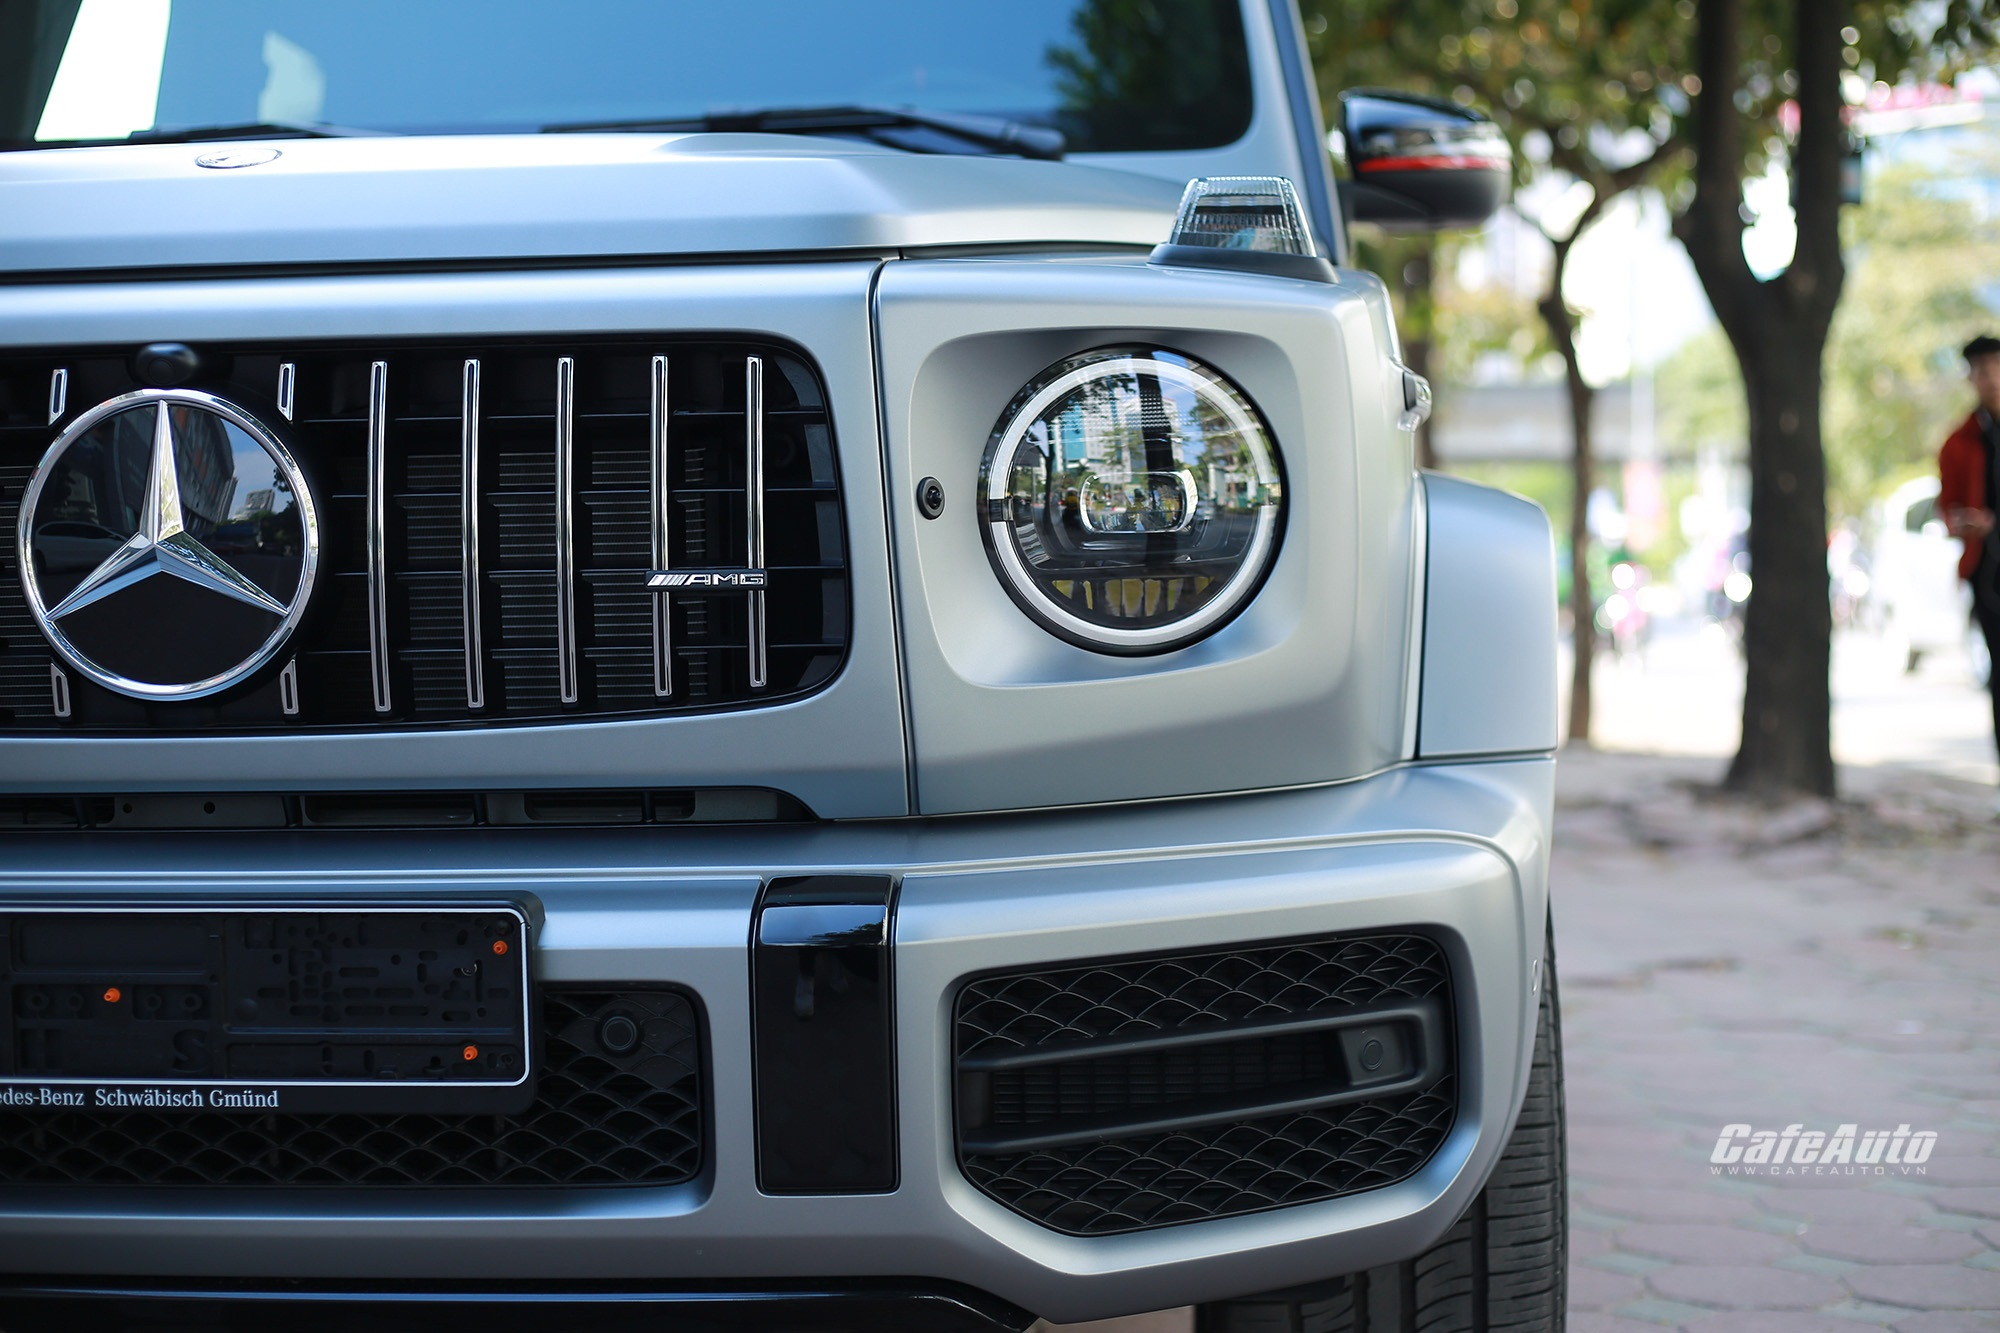 G63edition1-cafeautovn-5